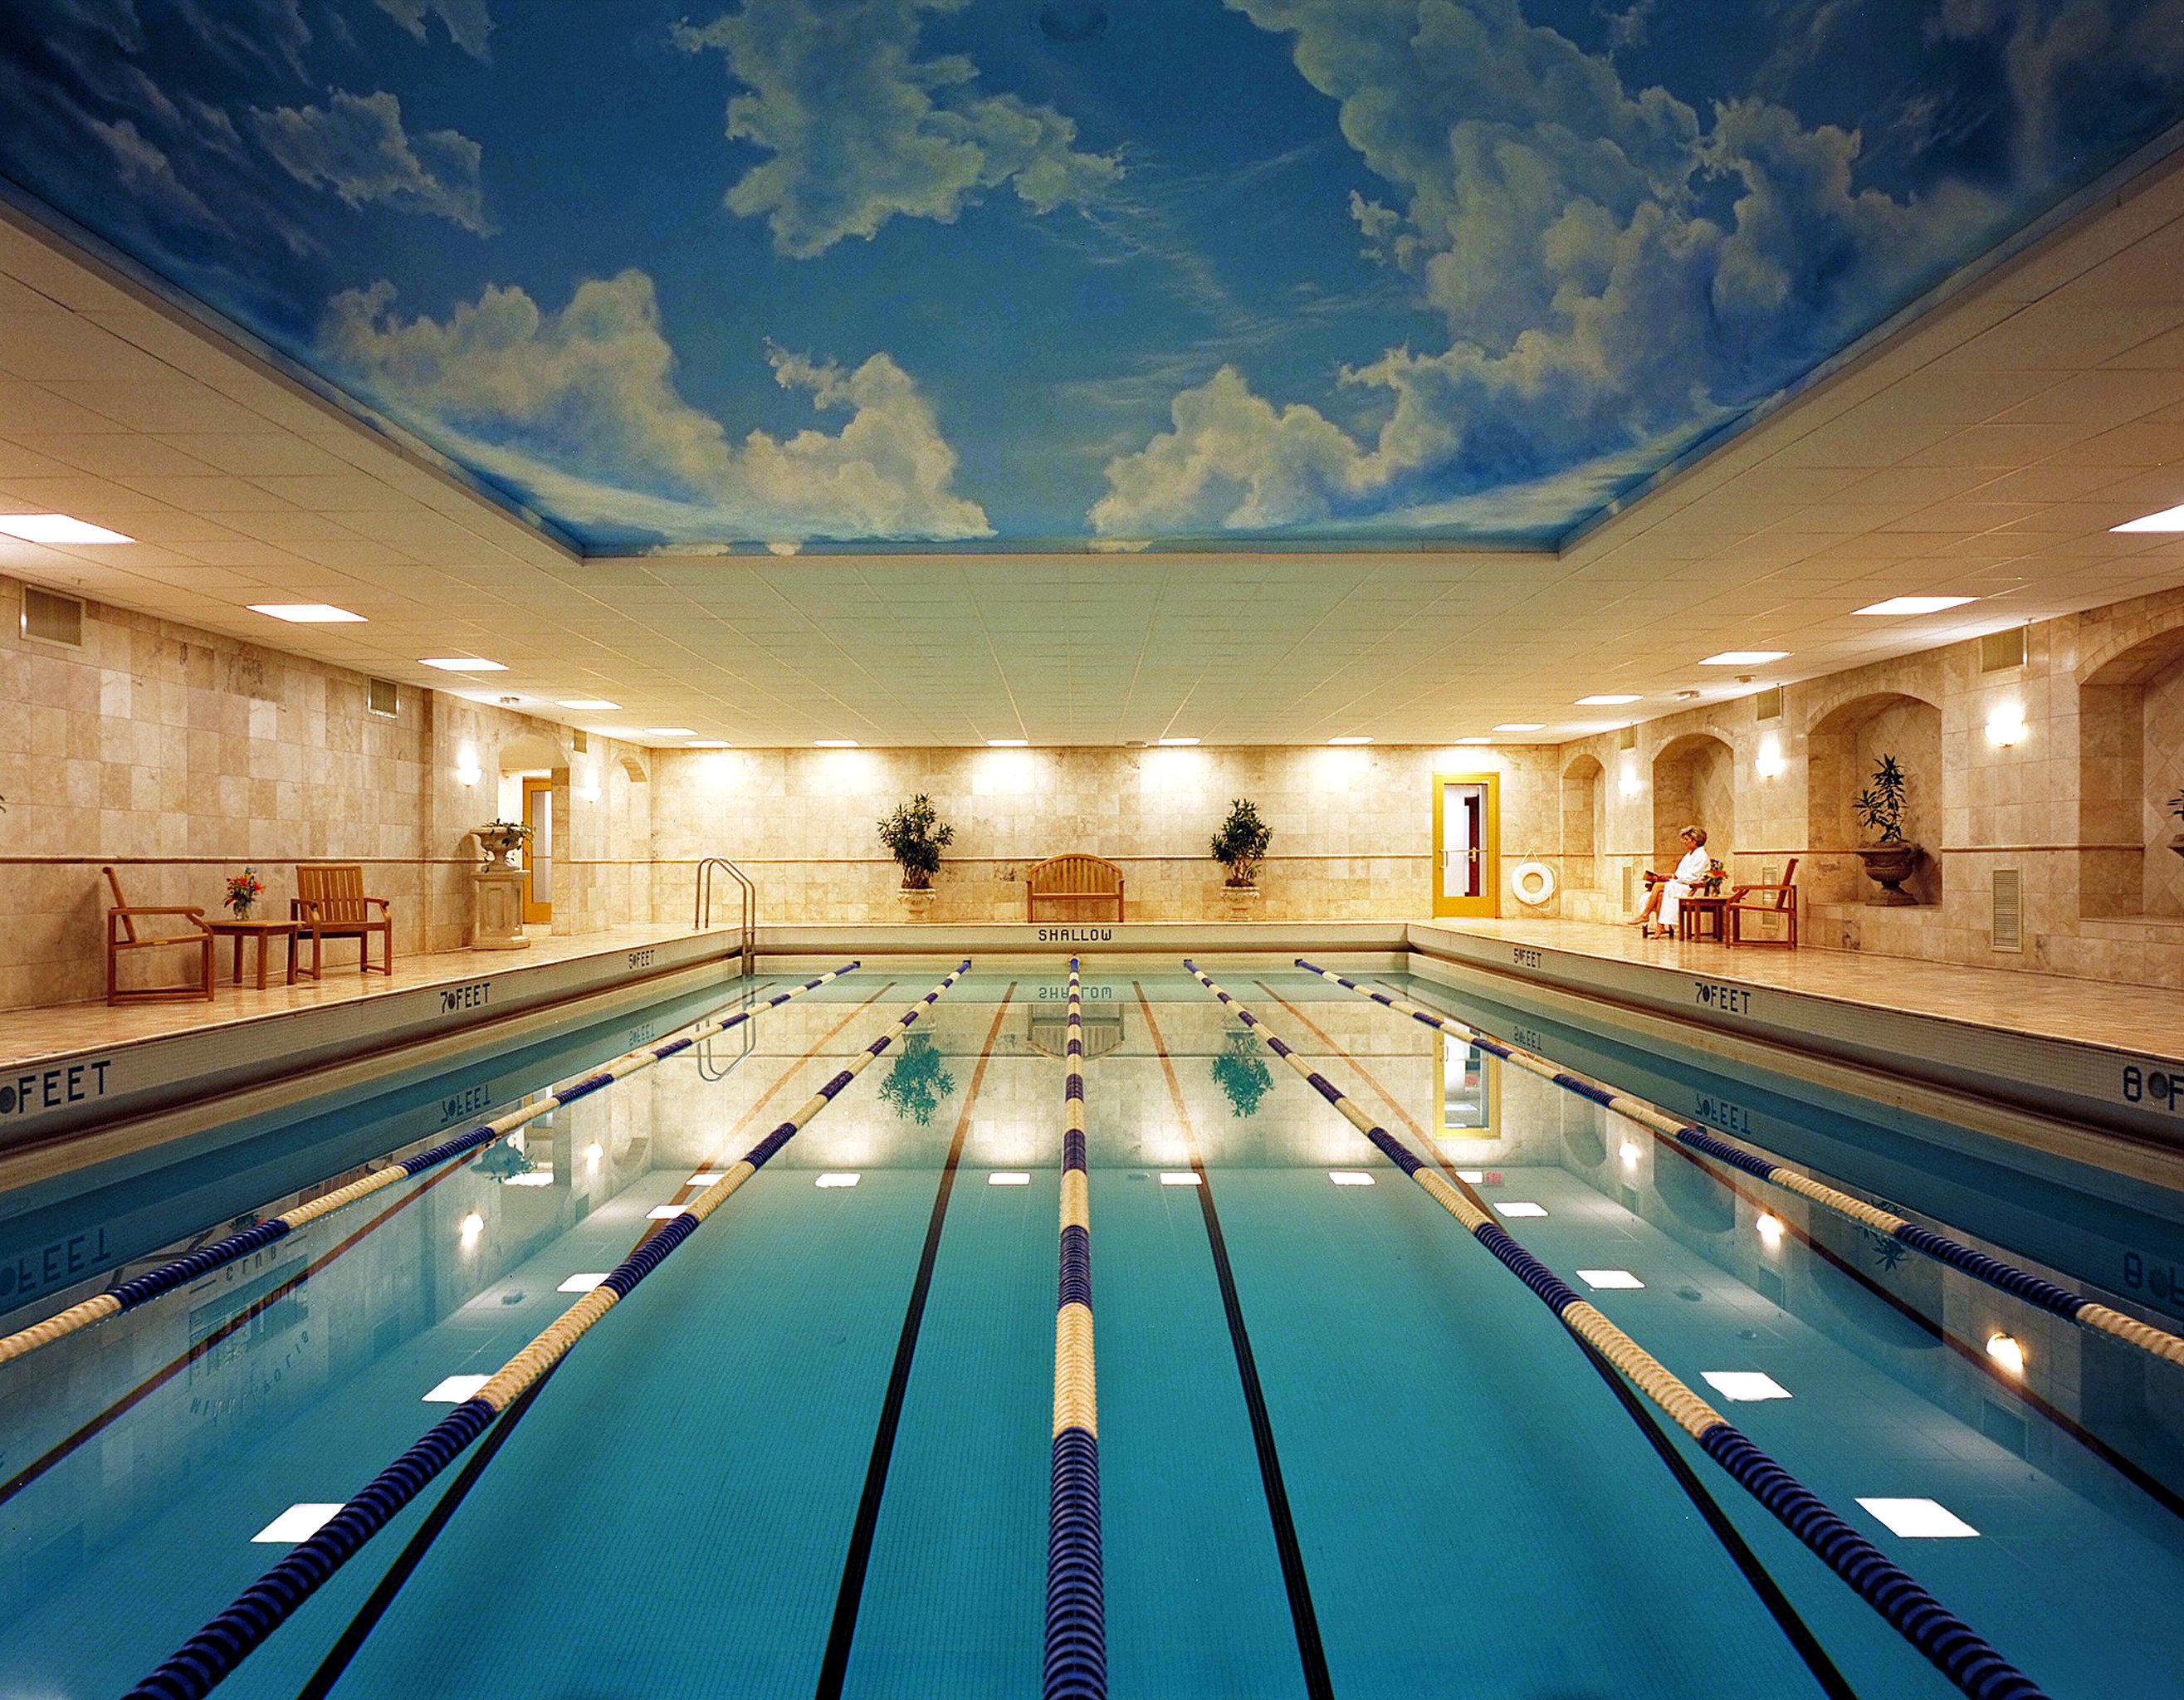 City Modern Pool scene road swimming pool way Architecture leisure centre convention center highway